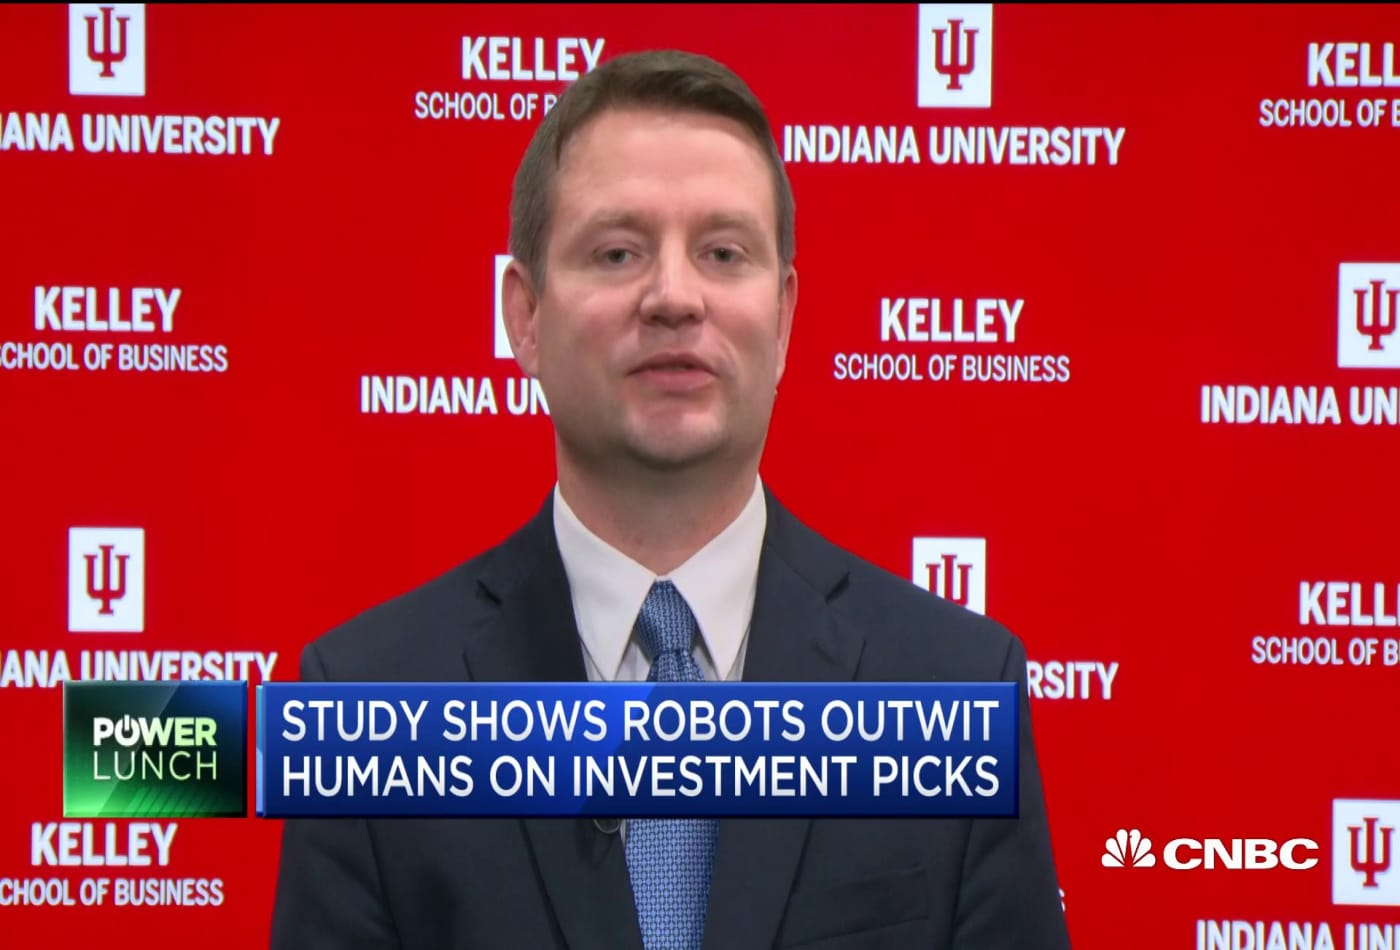 Studies show robots outwit humans on investment picks